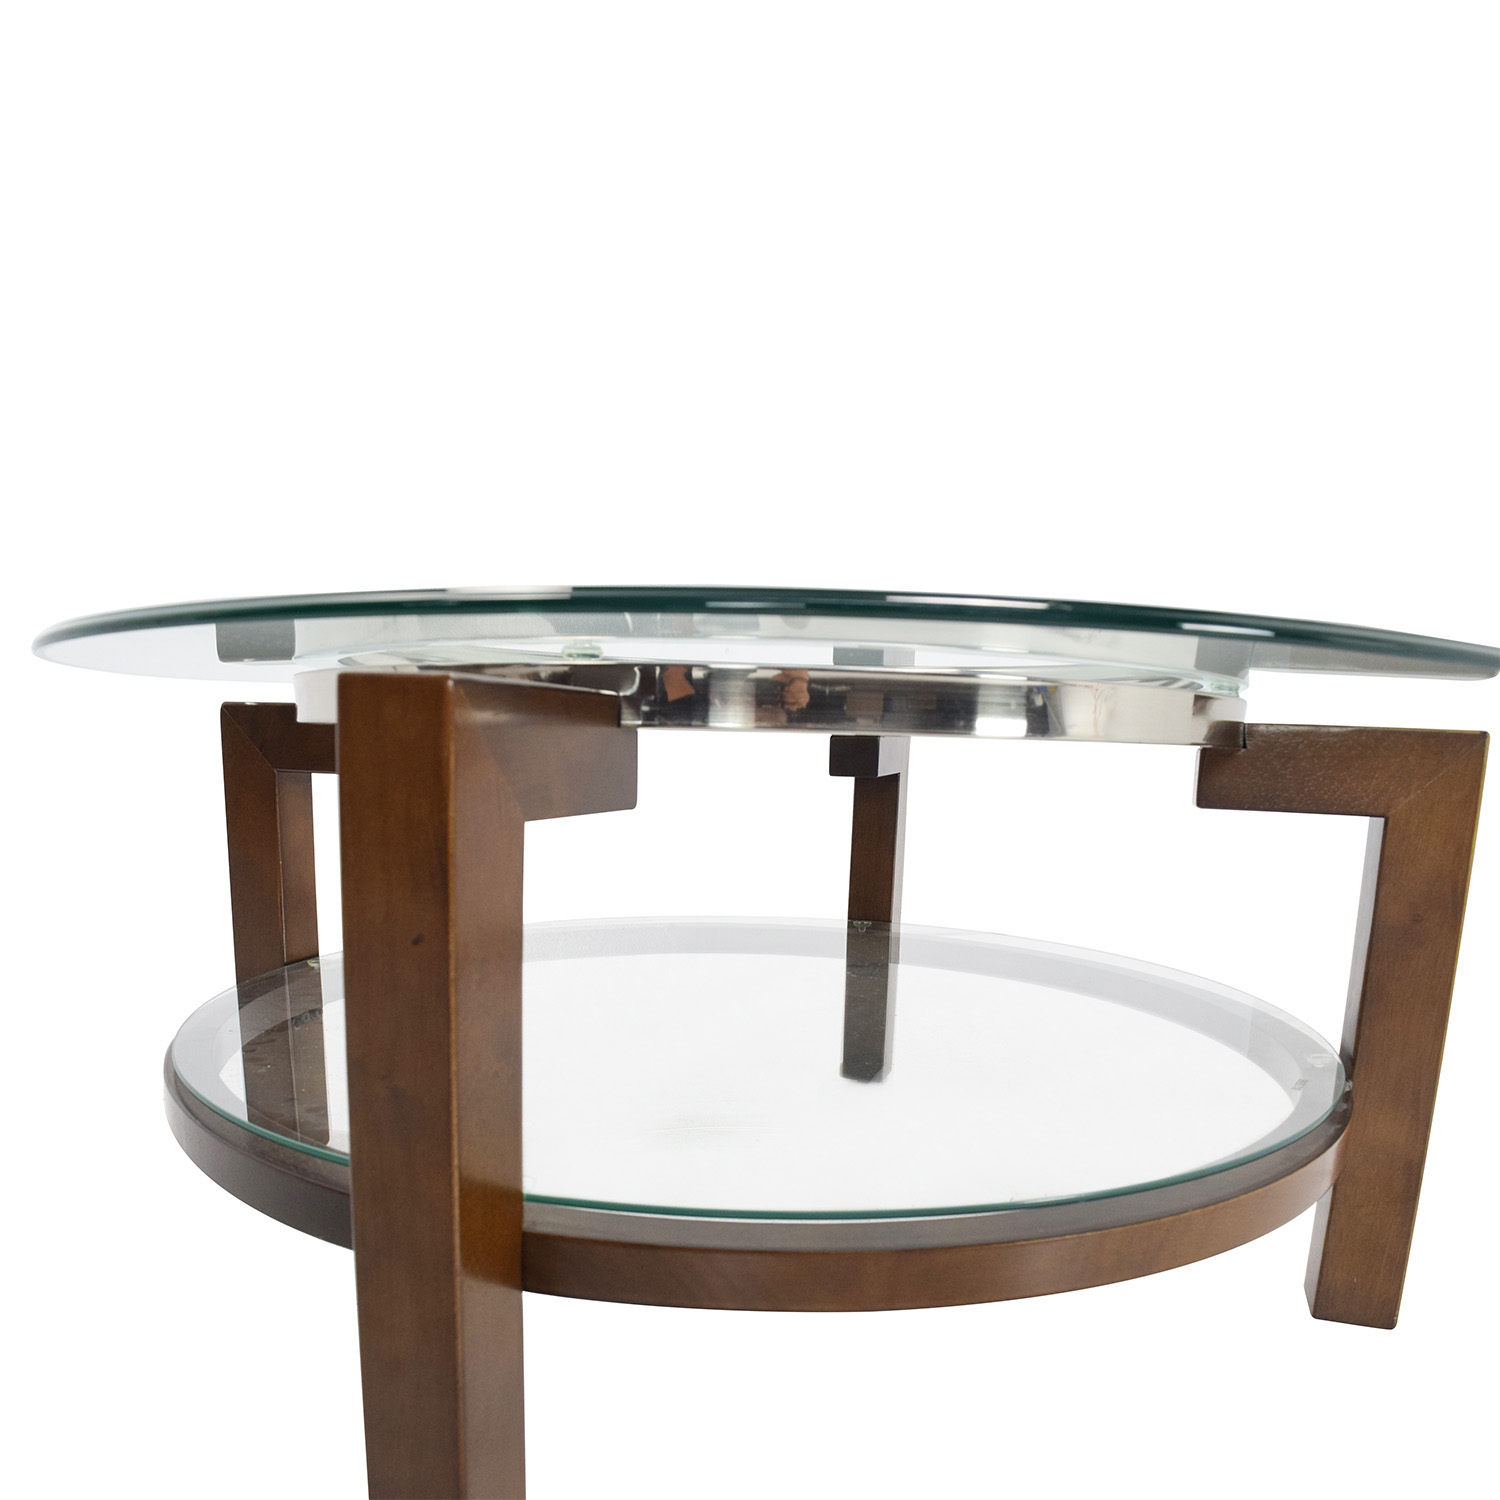 88 off macy 39 s macy 39 s glass top coffee table tables Used glass coffee table